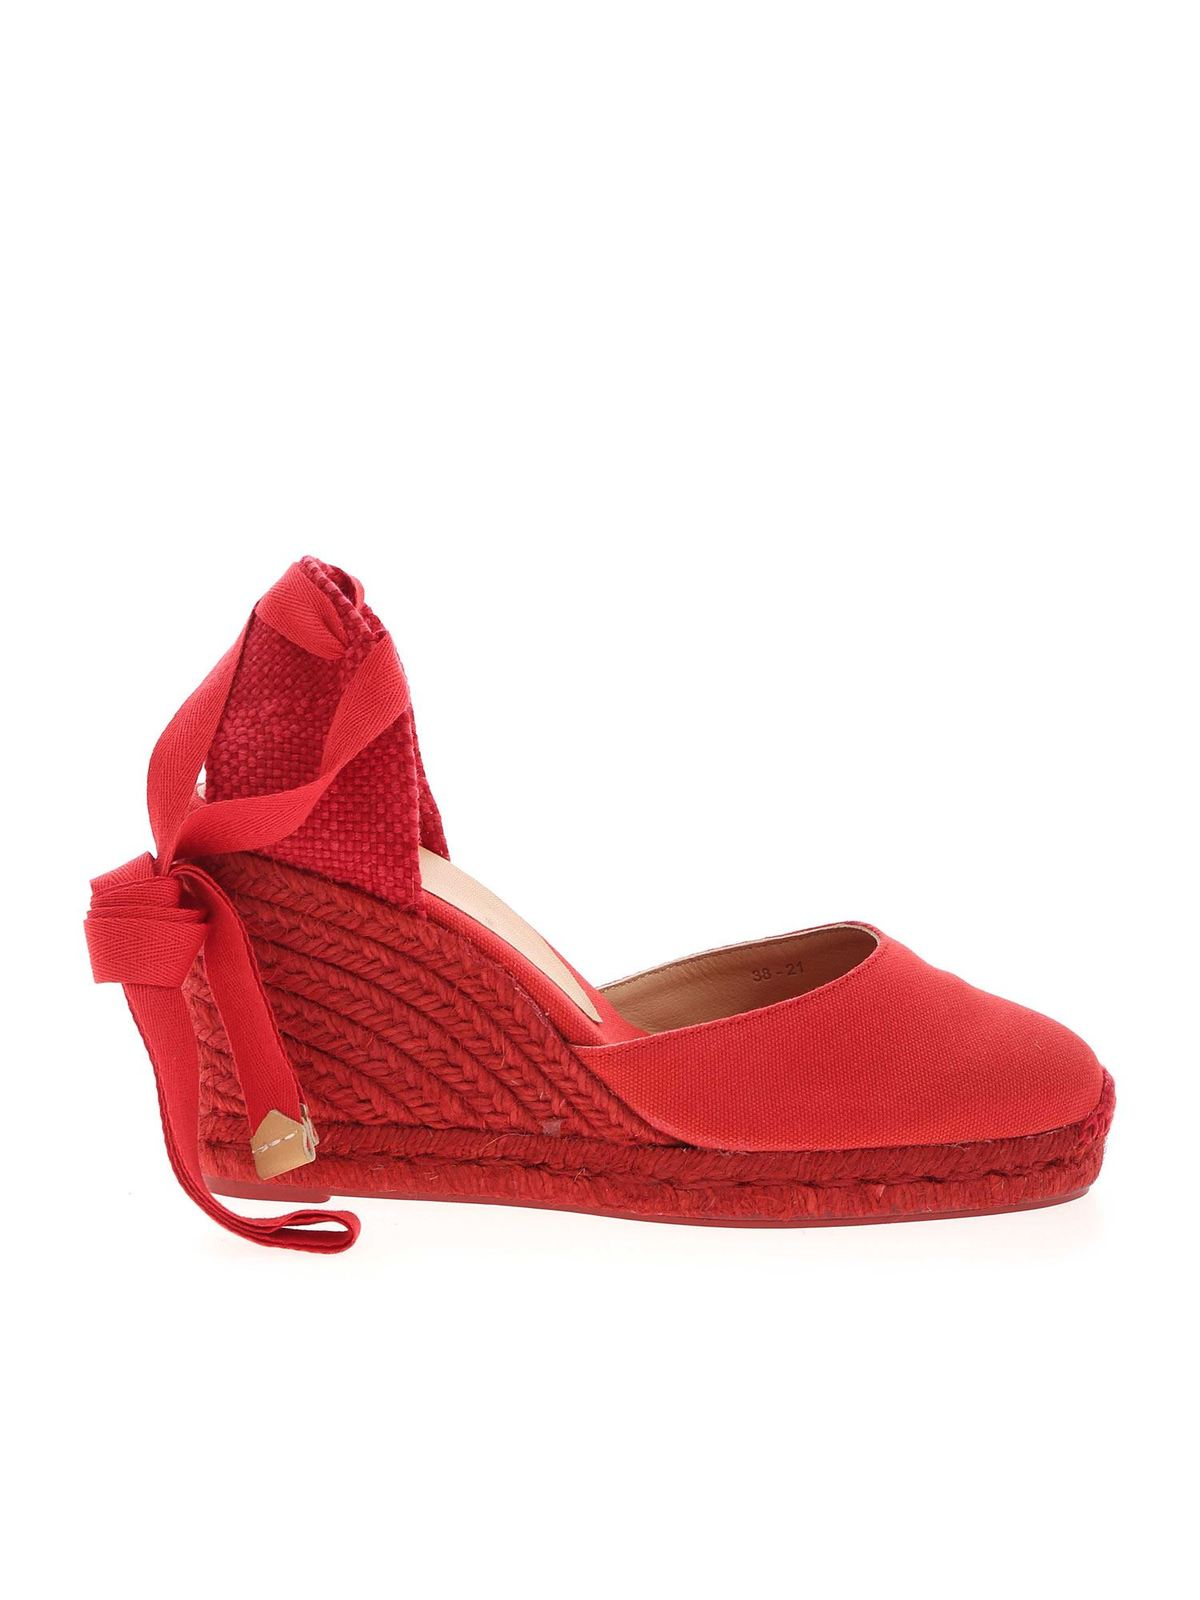 Castaã±er Wedges CARINA WEDGE ESPADRILLES IN RED